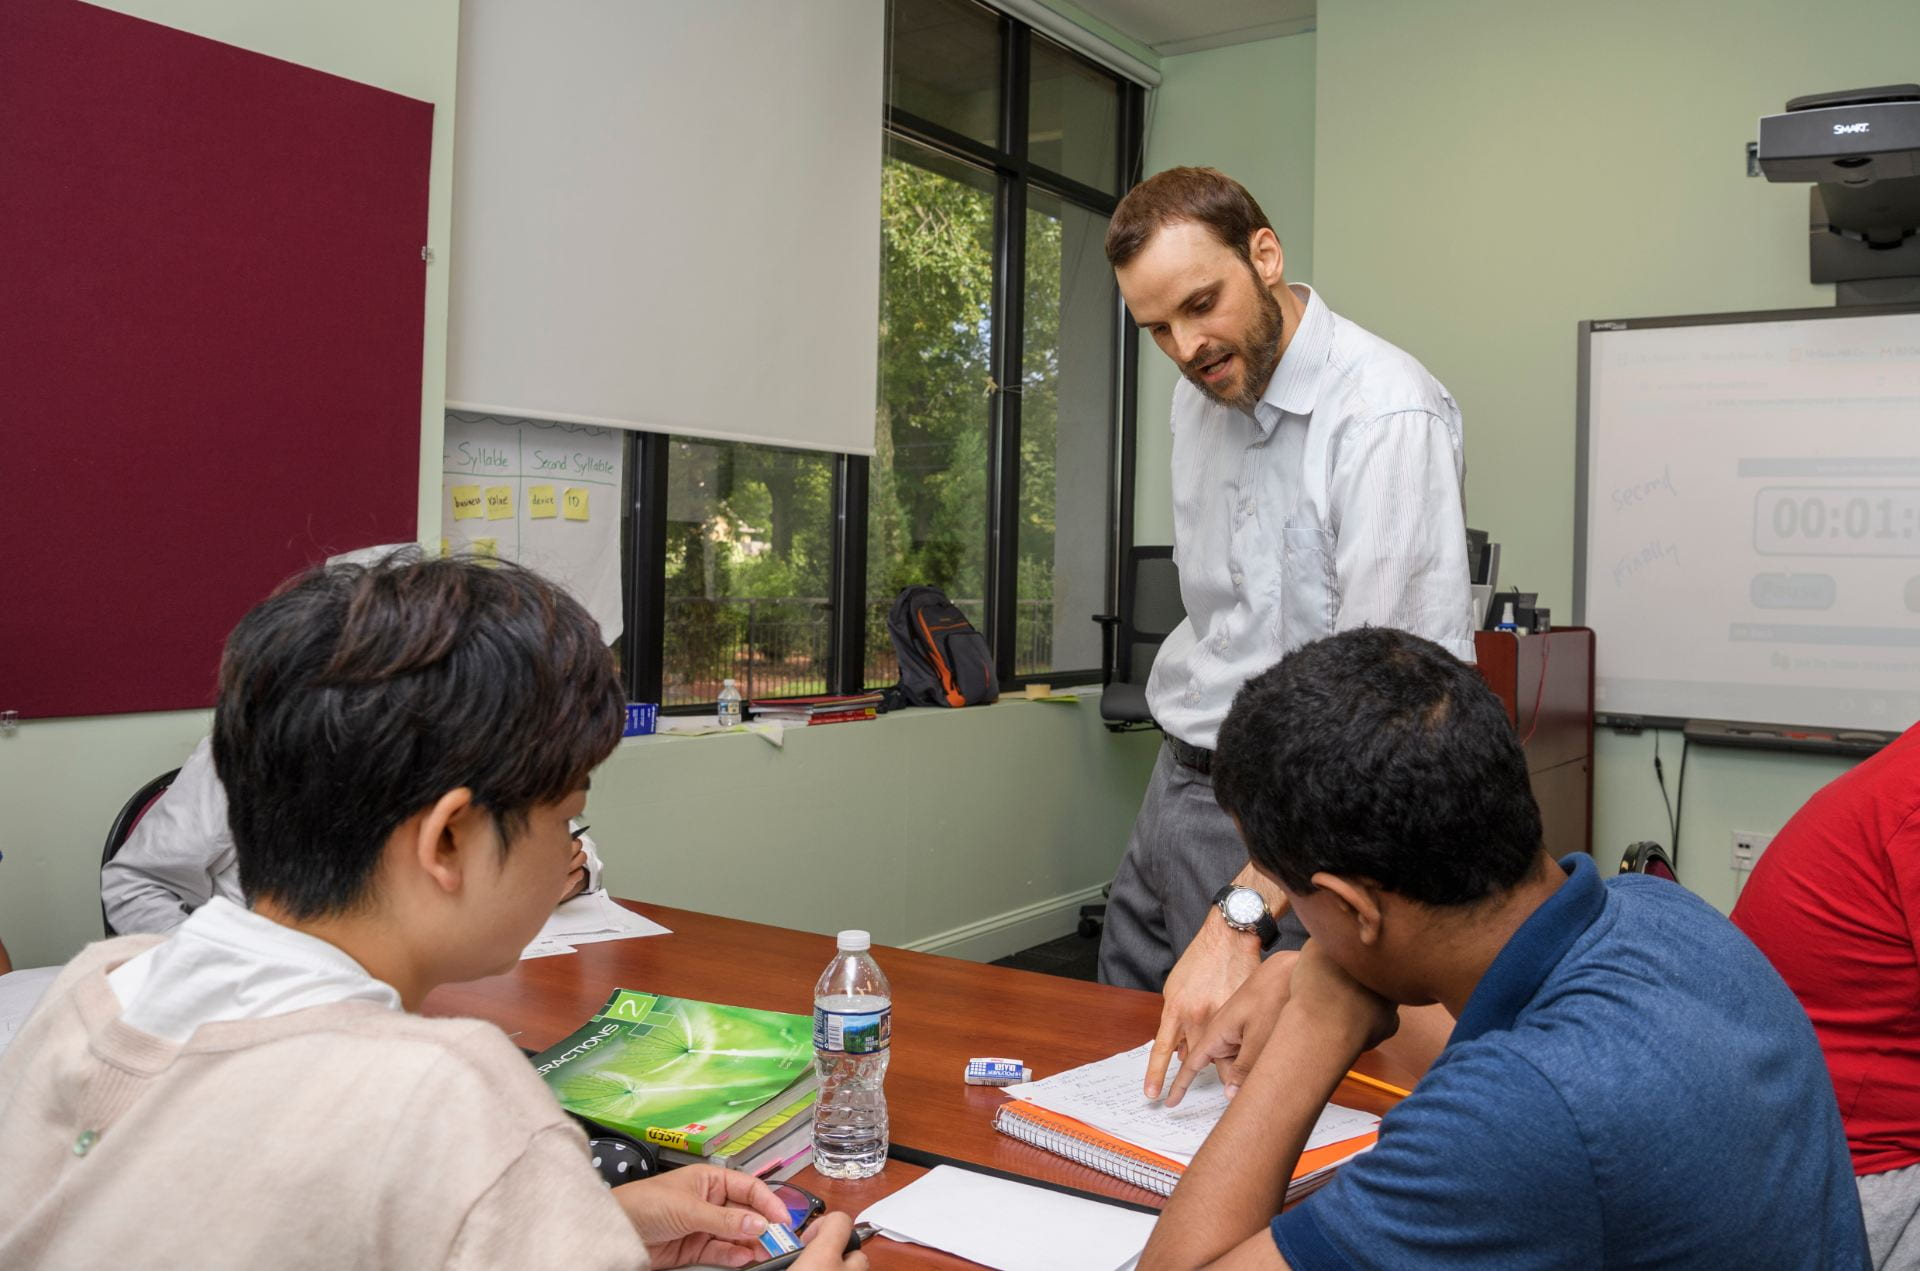 An ELI instructor works with students